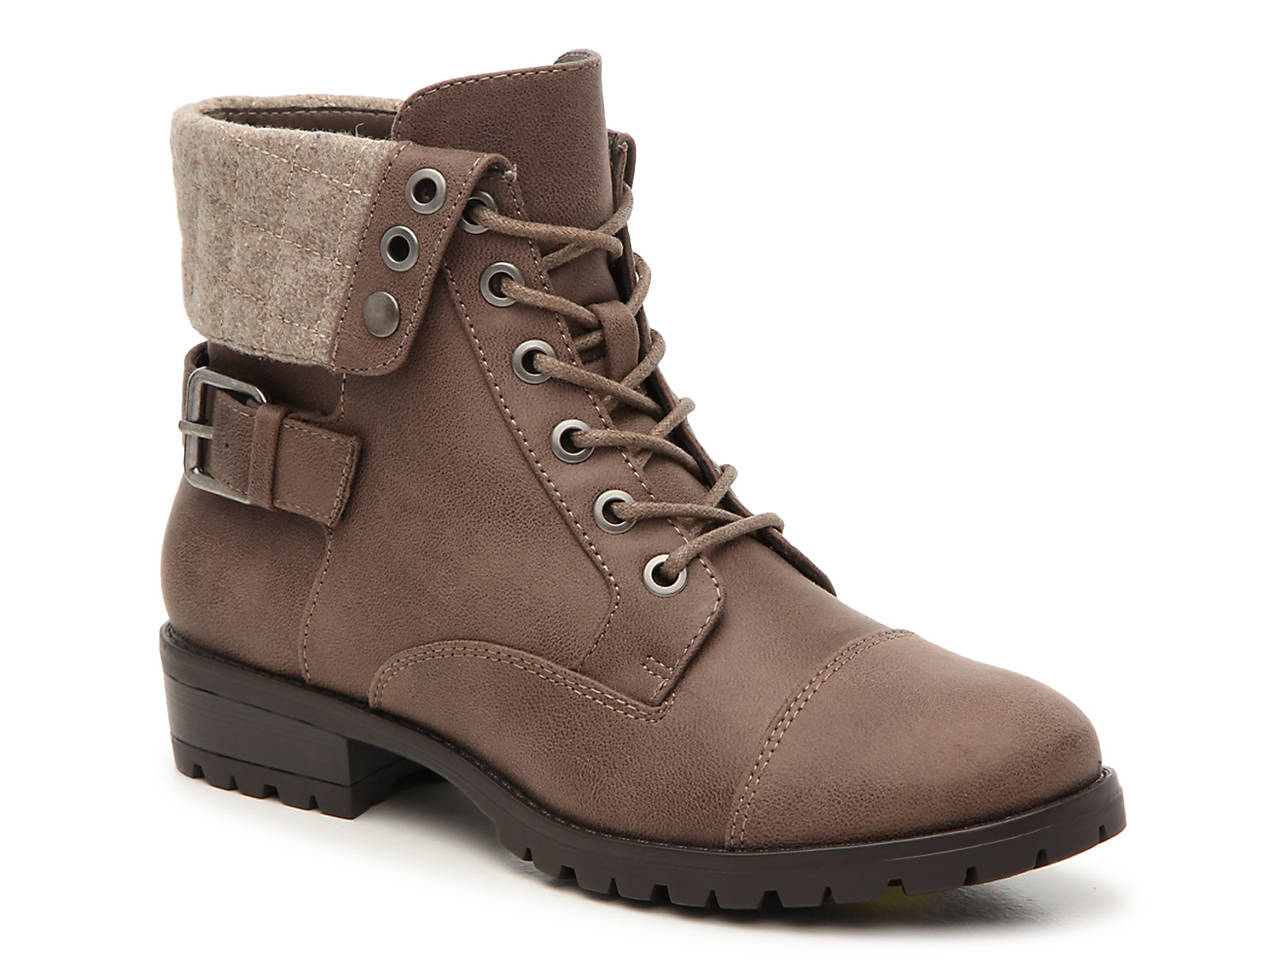 Sapey Combat Boot holiday gift guide for her